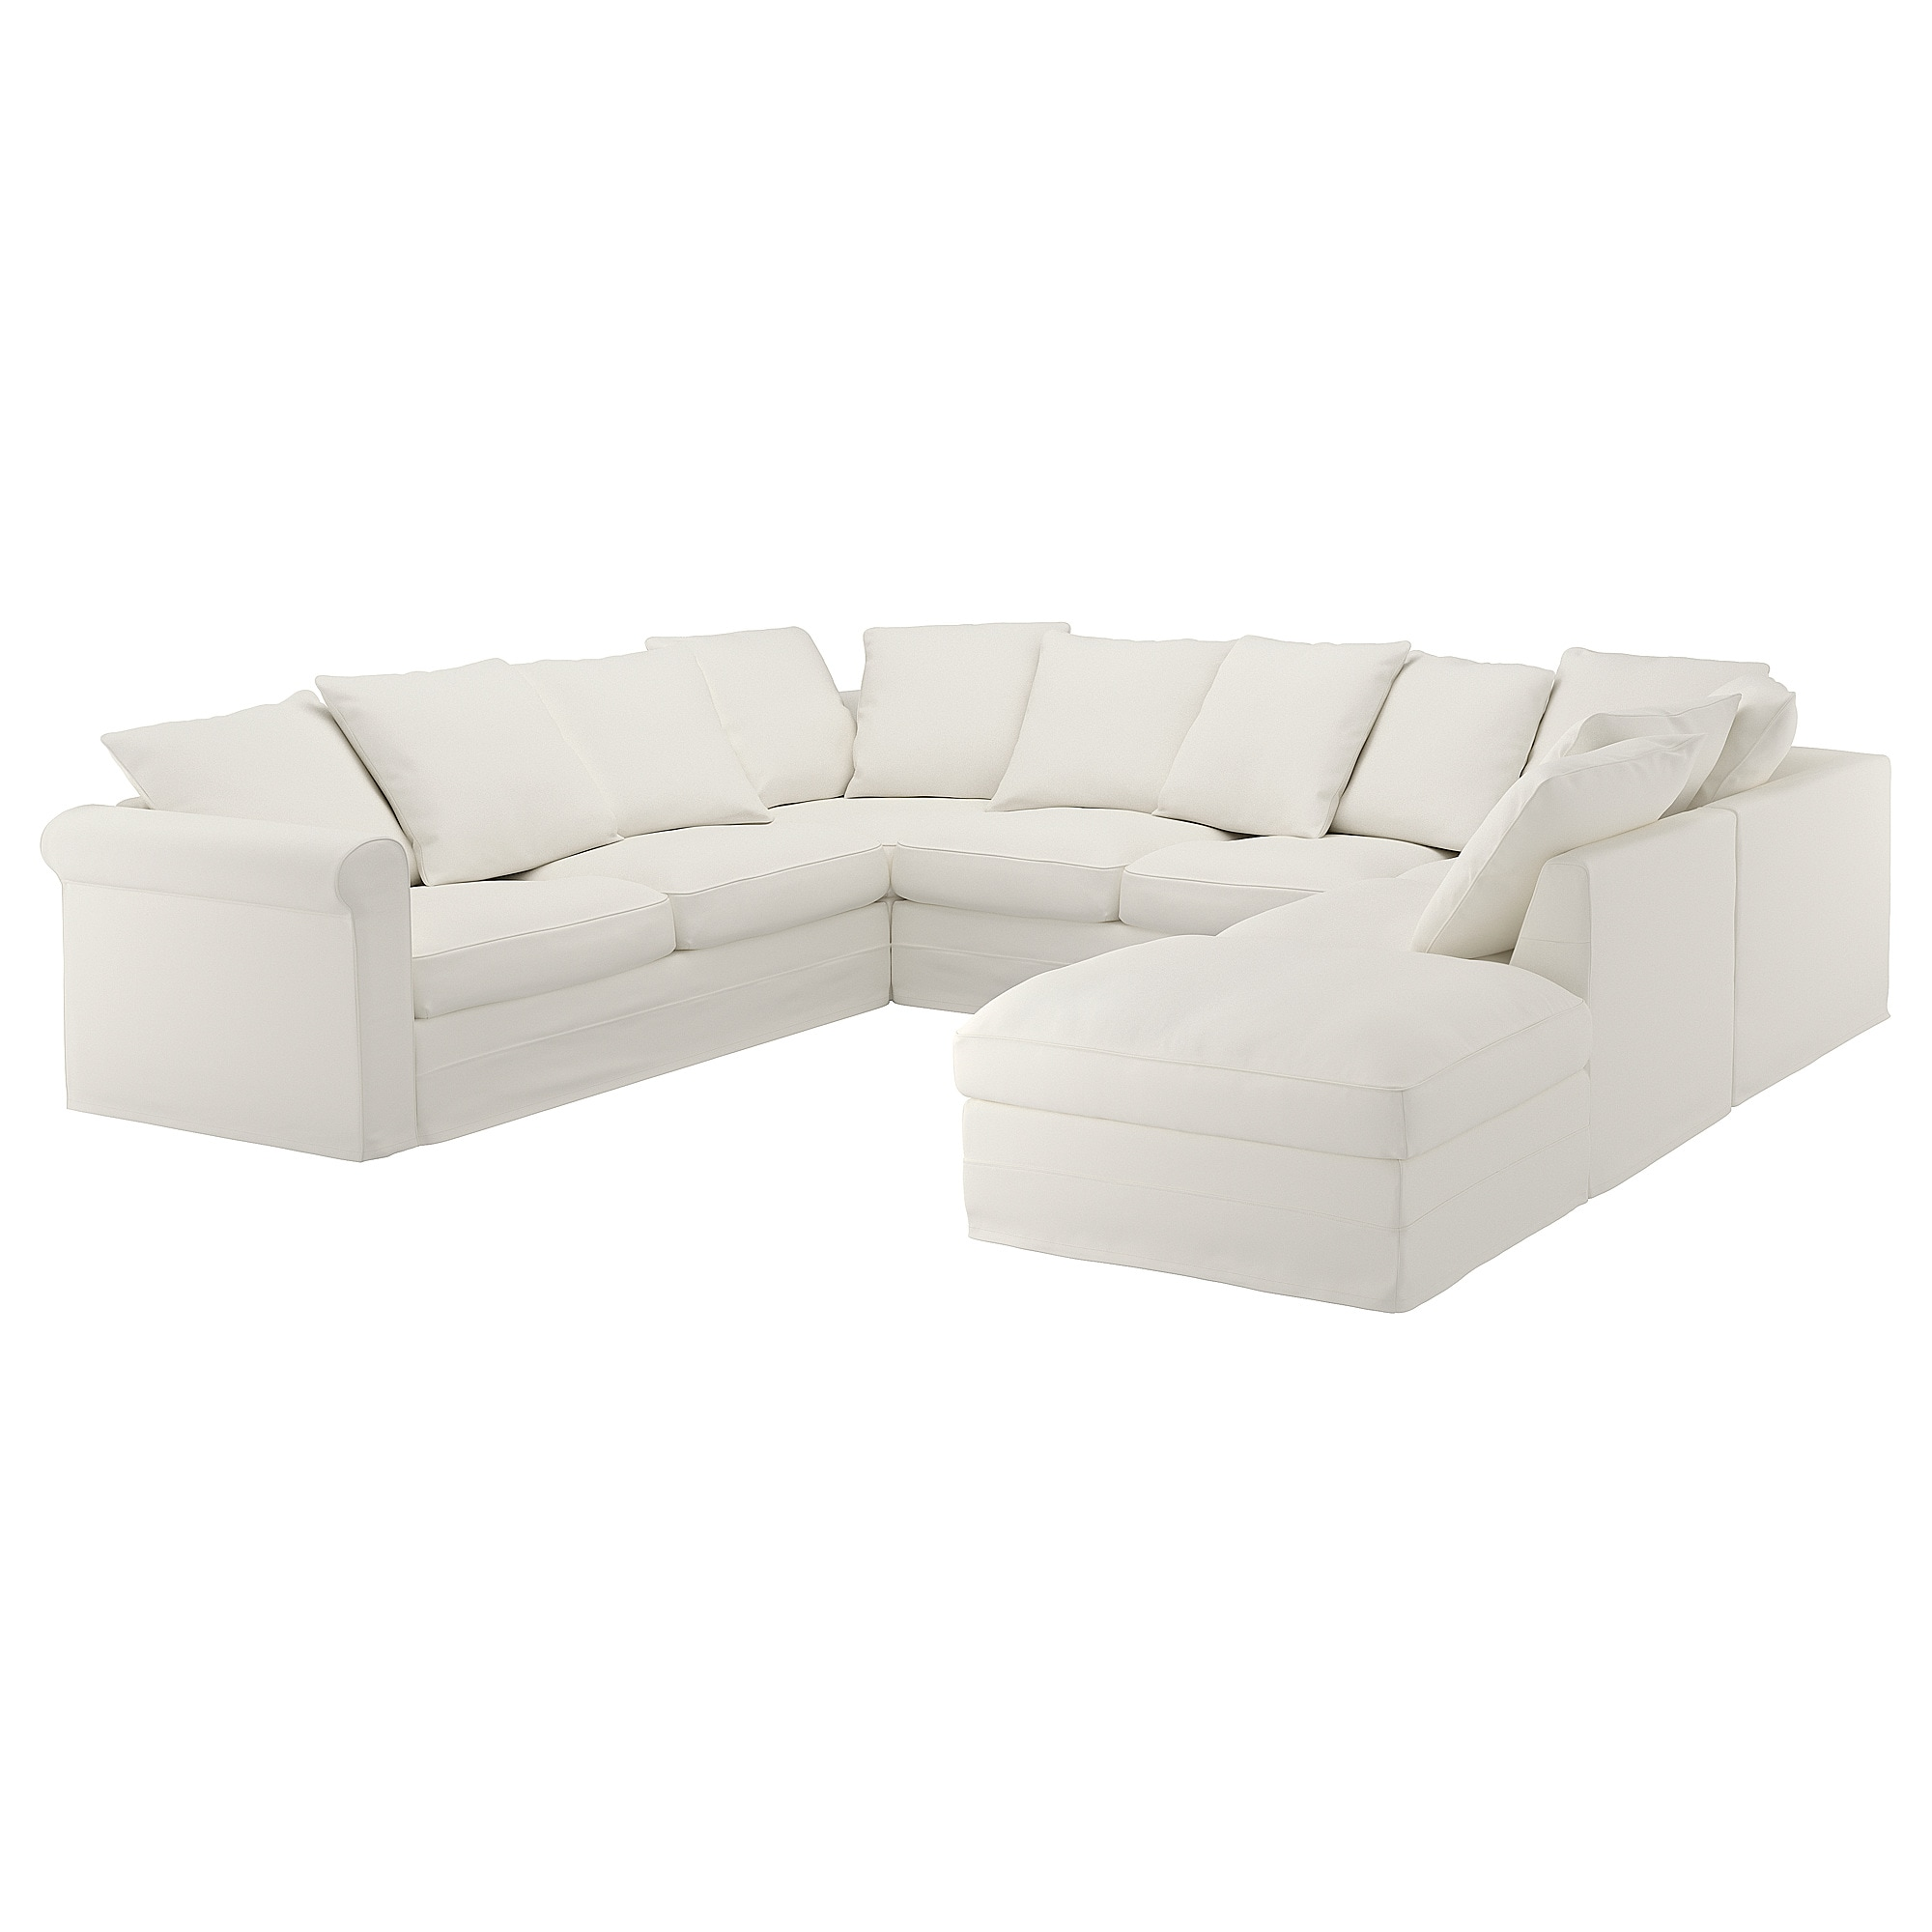 U Shaped Sectional Sofa Ikea GrÖnlid Sectional 6 Seat With Open End Inseros White